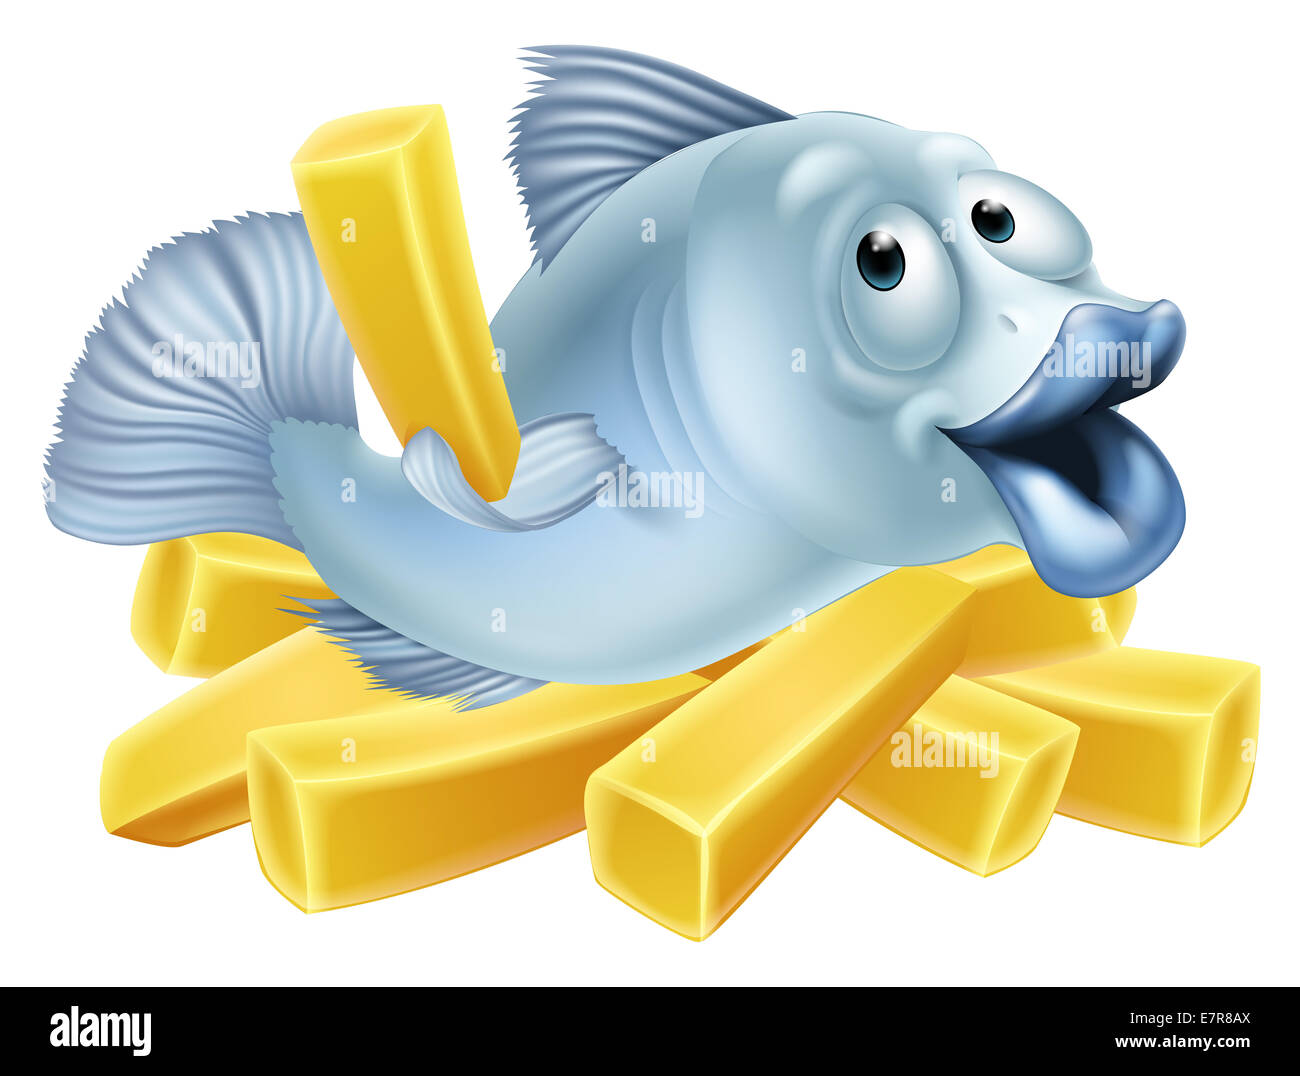 Fish N Chips Cartoon Characters : Fish and chips illustration of a happy character